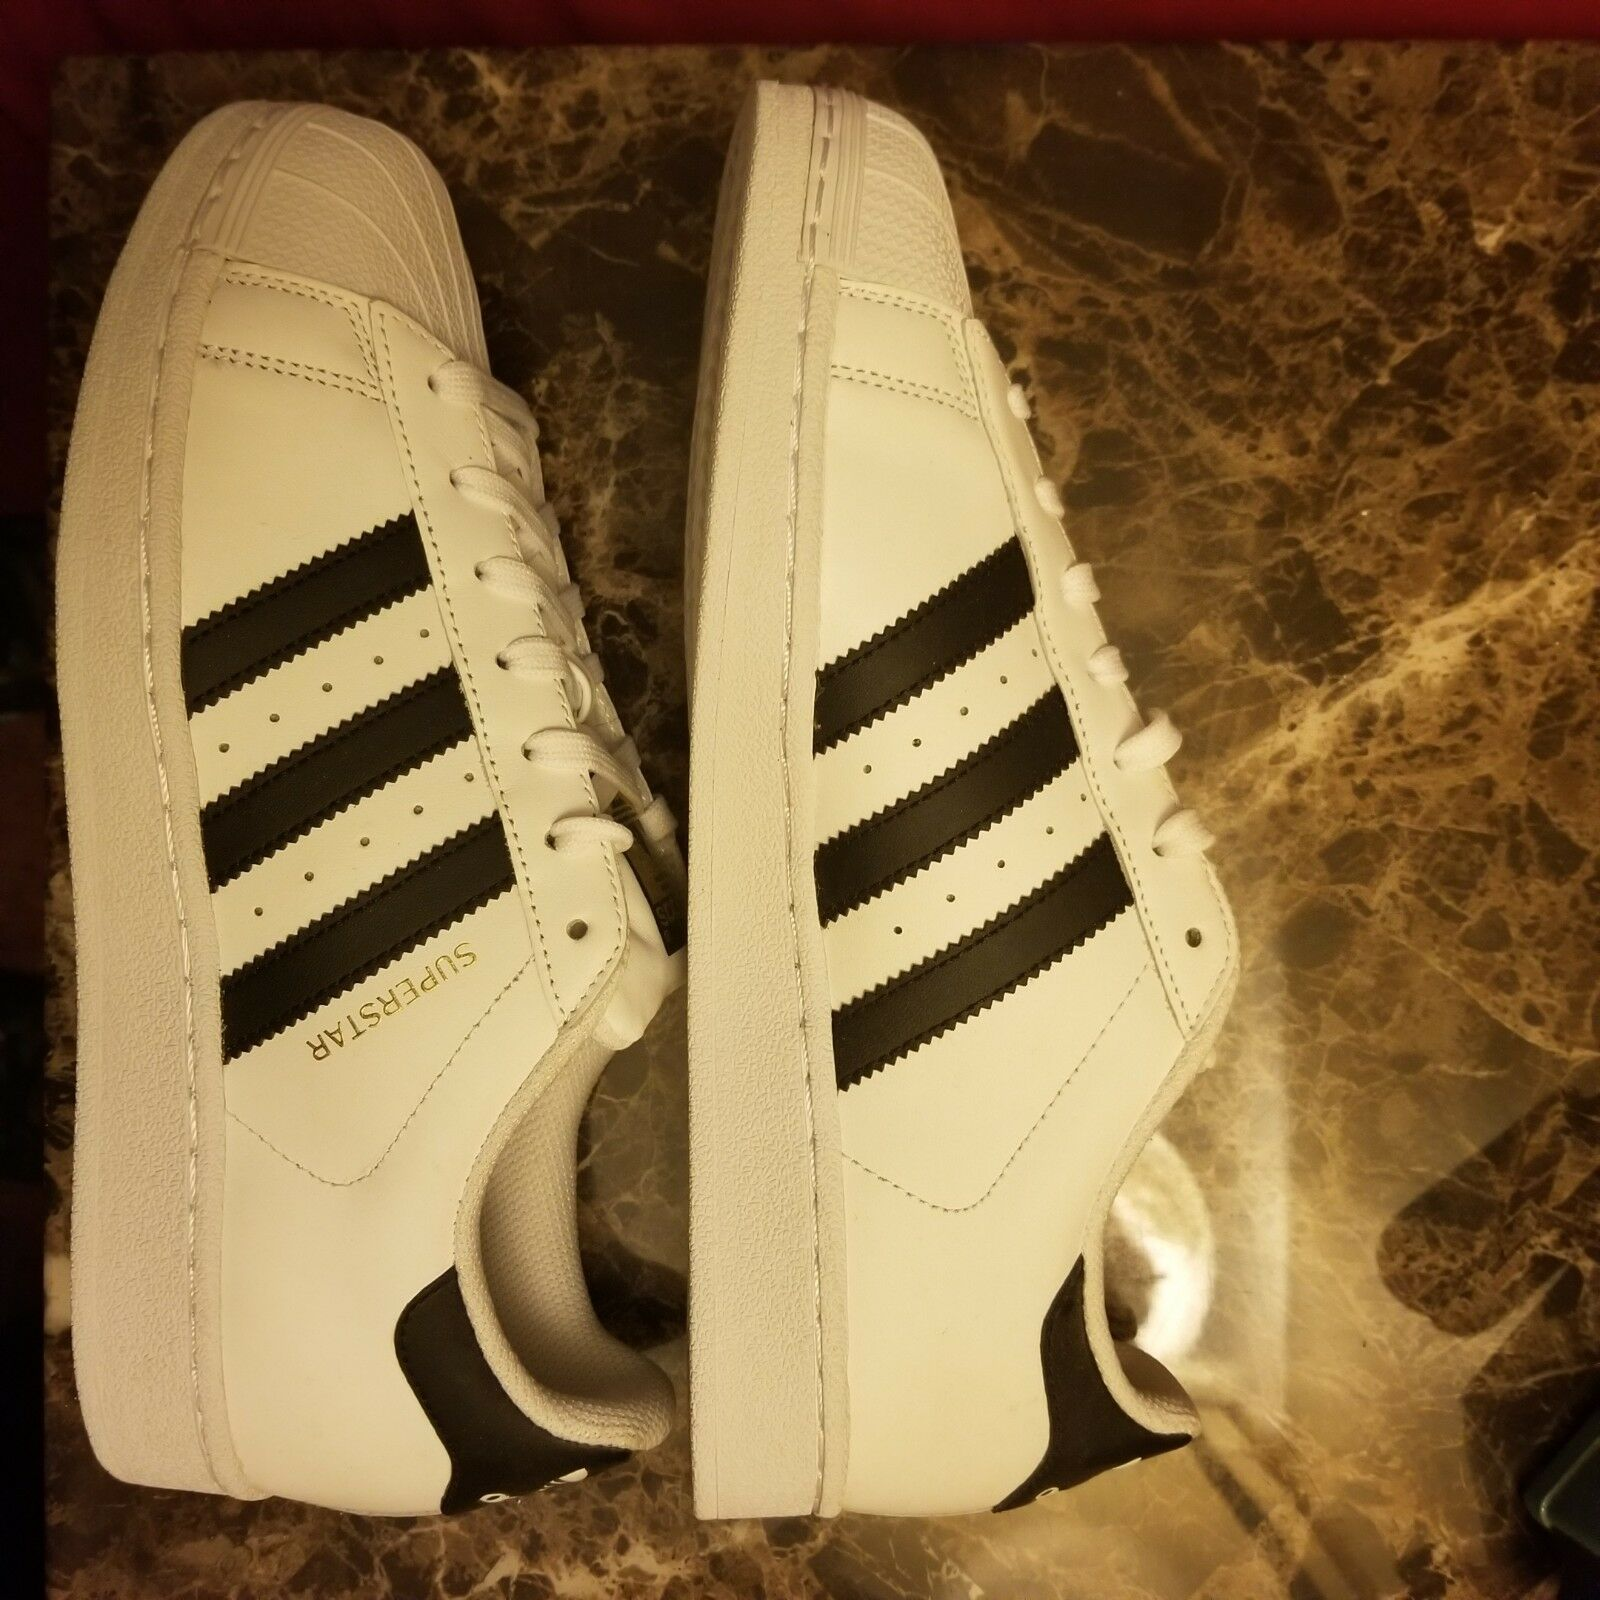 New Adidas Men's Superstar shoes White Onix gold Shell Toe Size 8